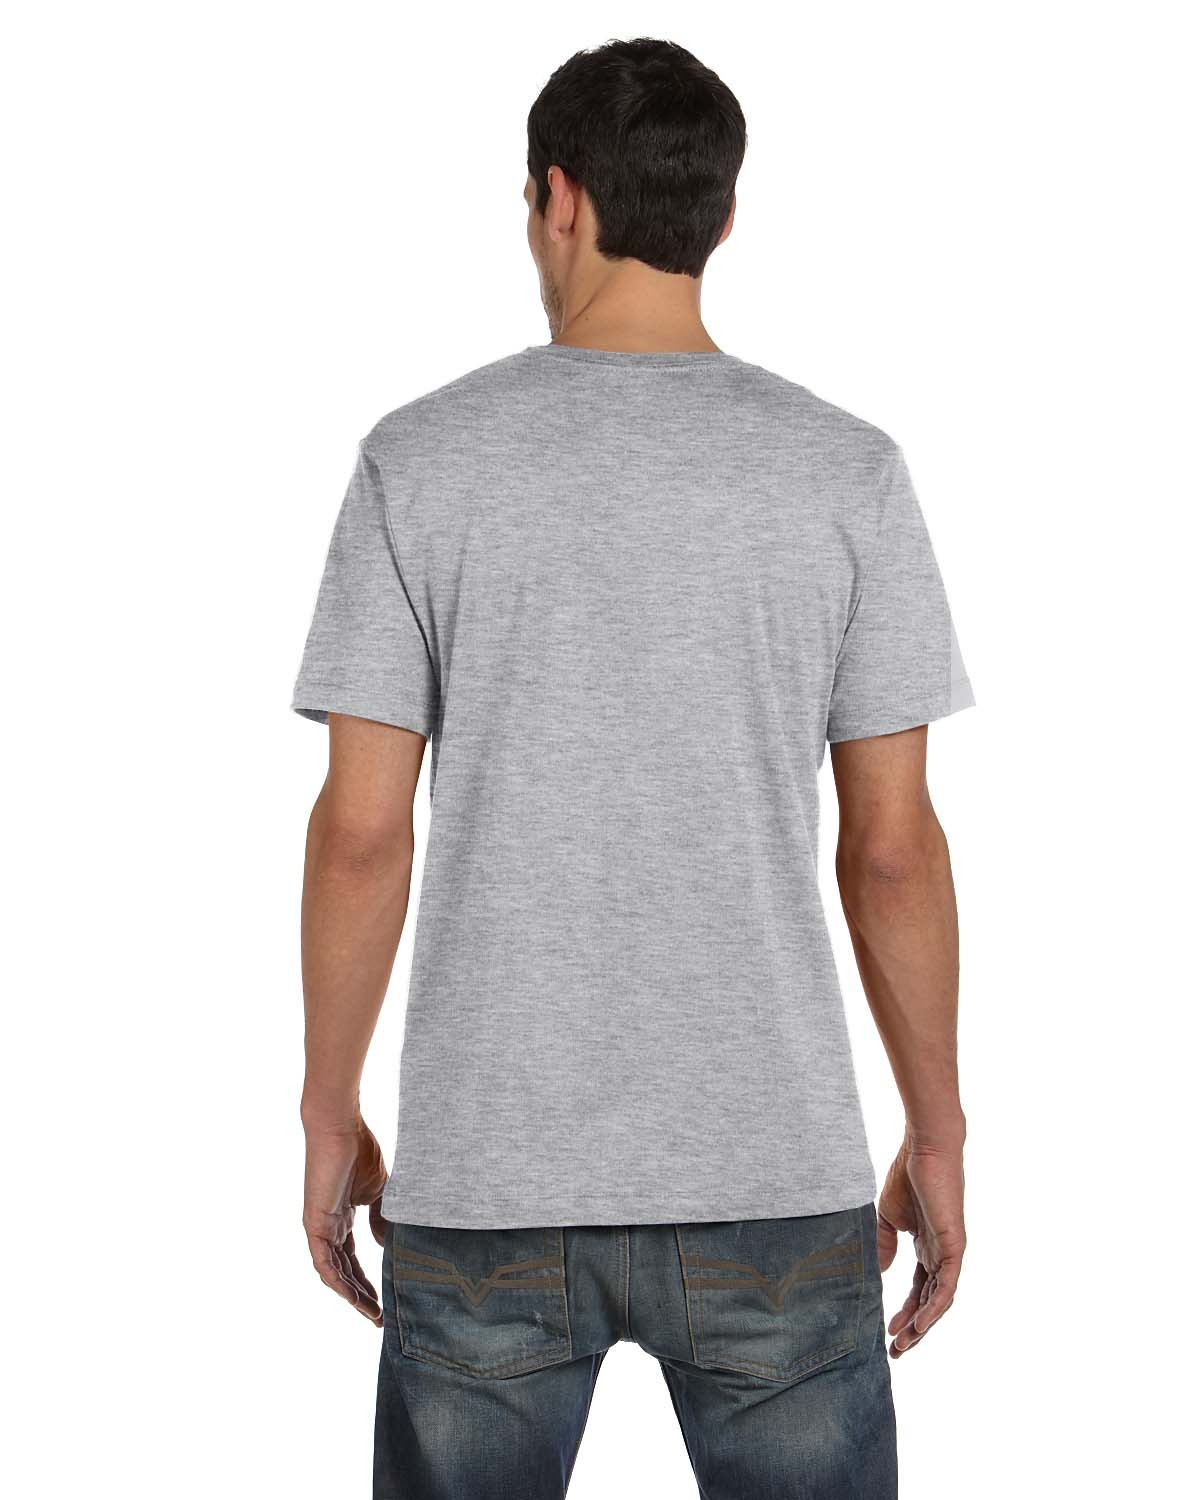 AA1070 Alternative HEATHER GREY